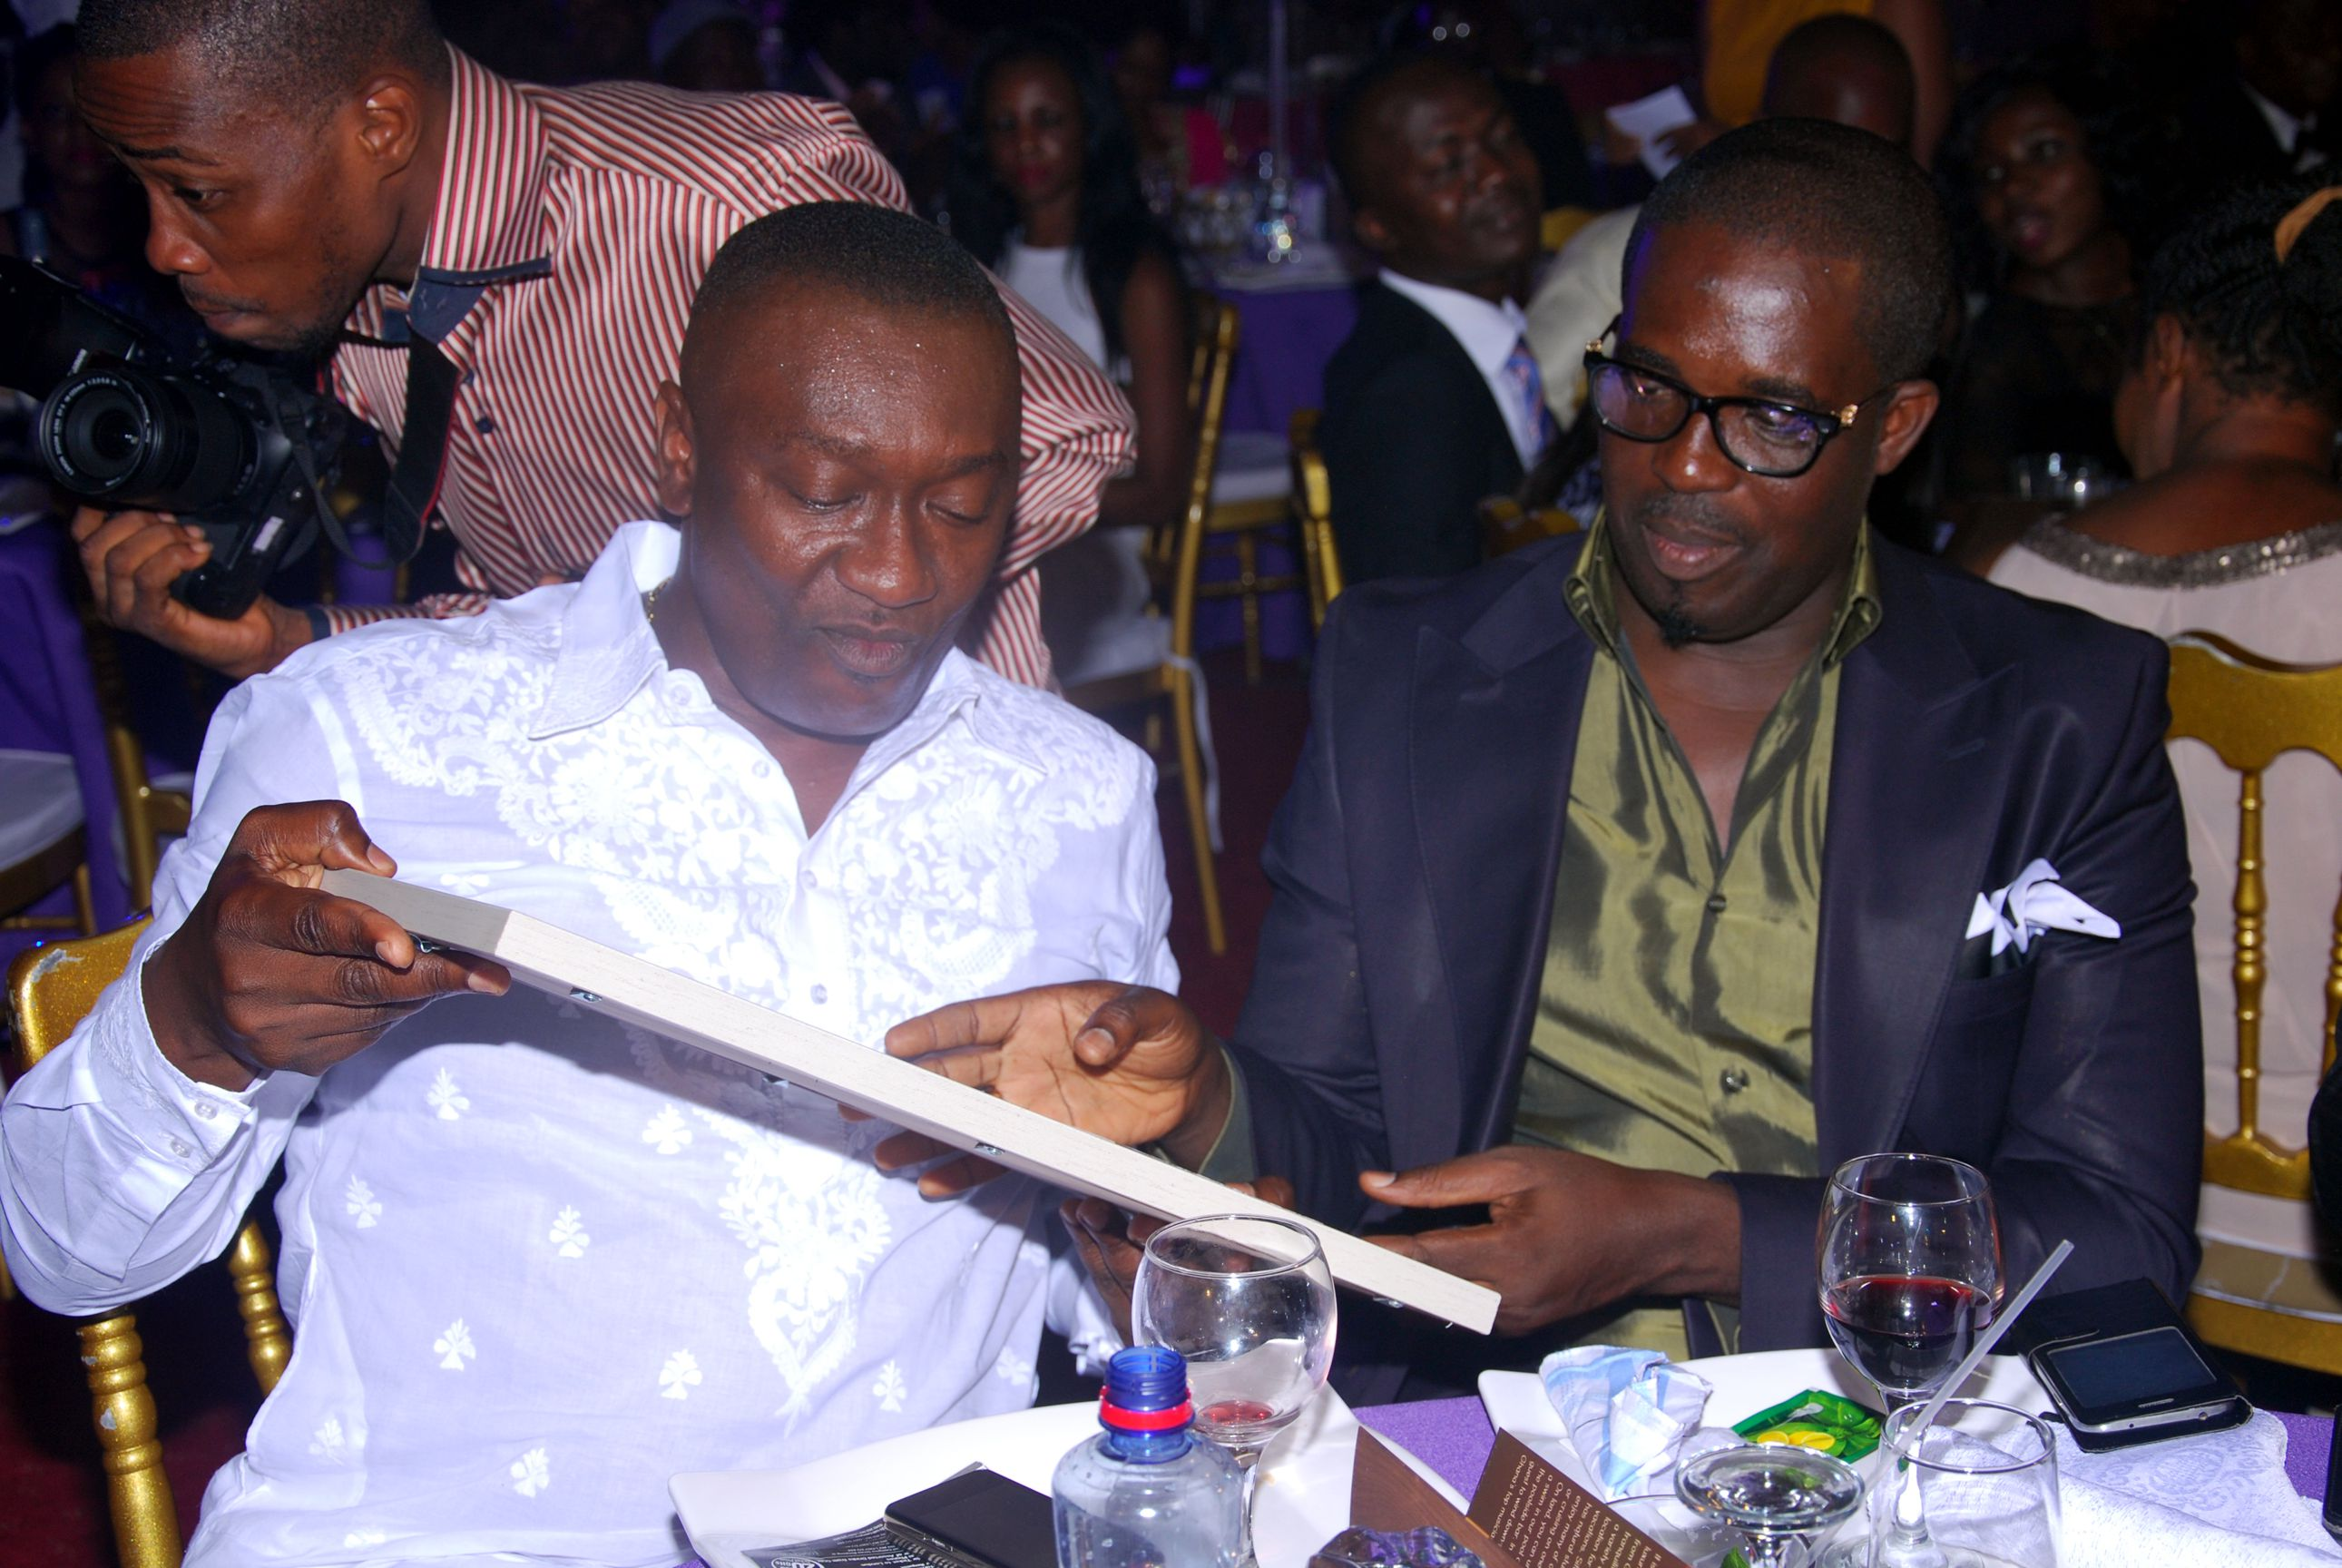 Special Ice CEO bought Nana Ampadu collection for 5000